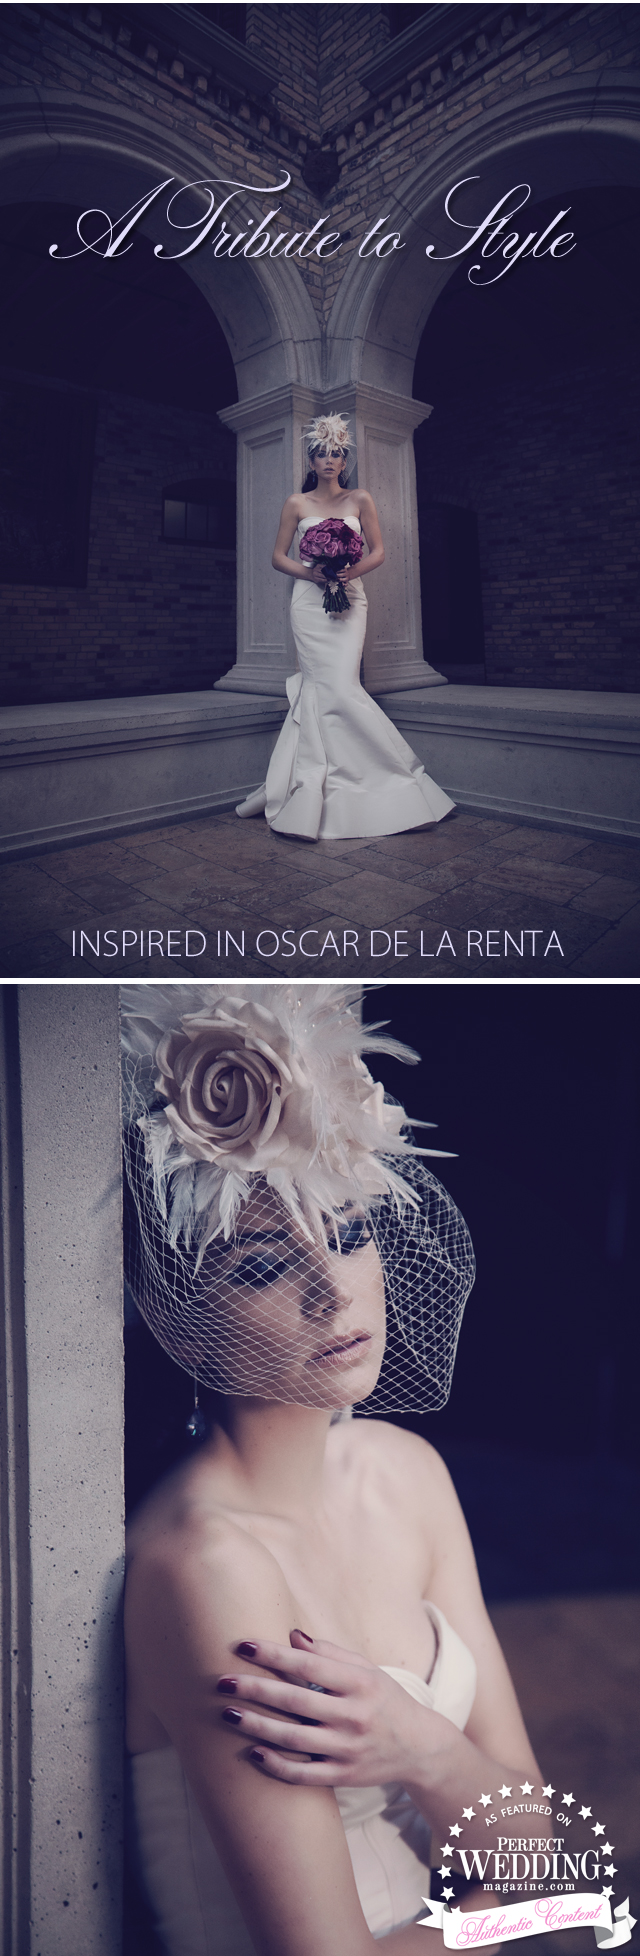 A Tribute to Style (Part 1),Oscar de la Renta, Oscar de la Renta Wedding Décor, Wedding Décor, Floral Trends, Weddings in Haciendas, Perfect Wedding Magazine Blog